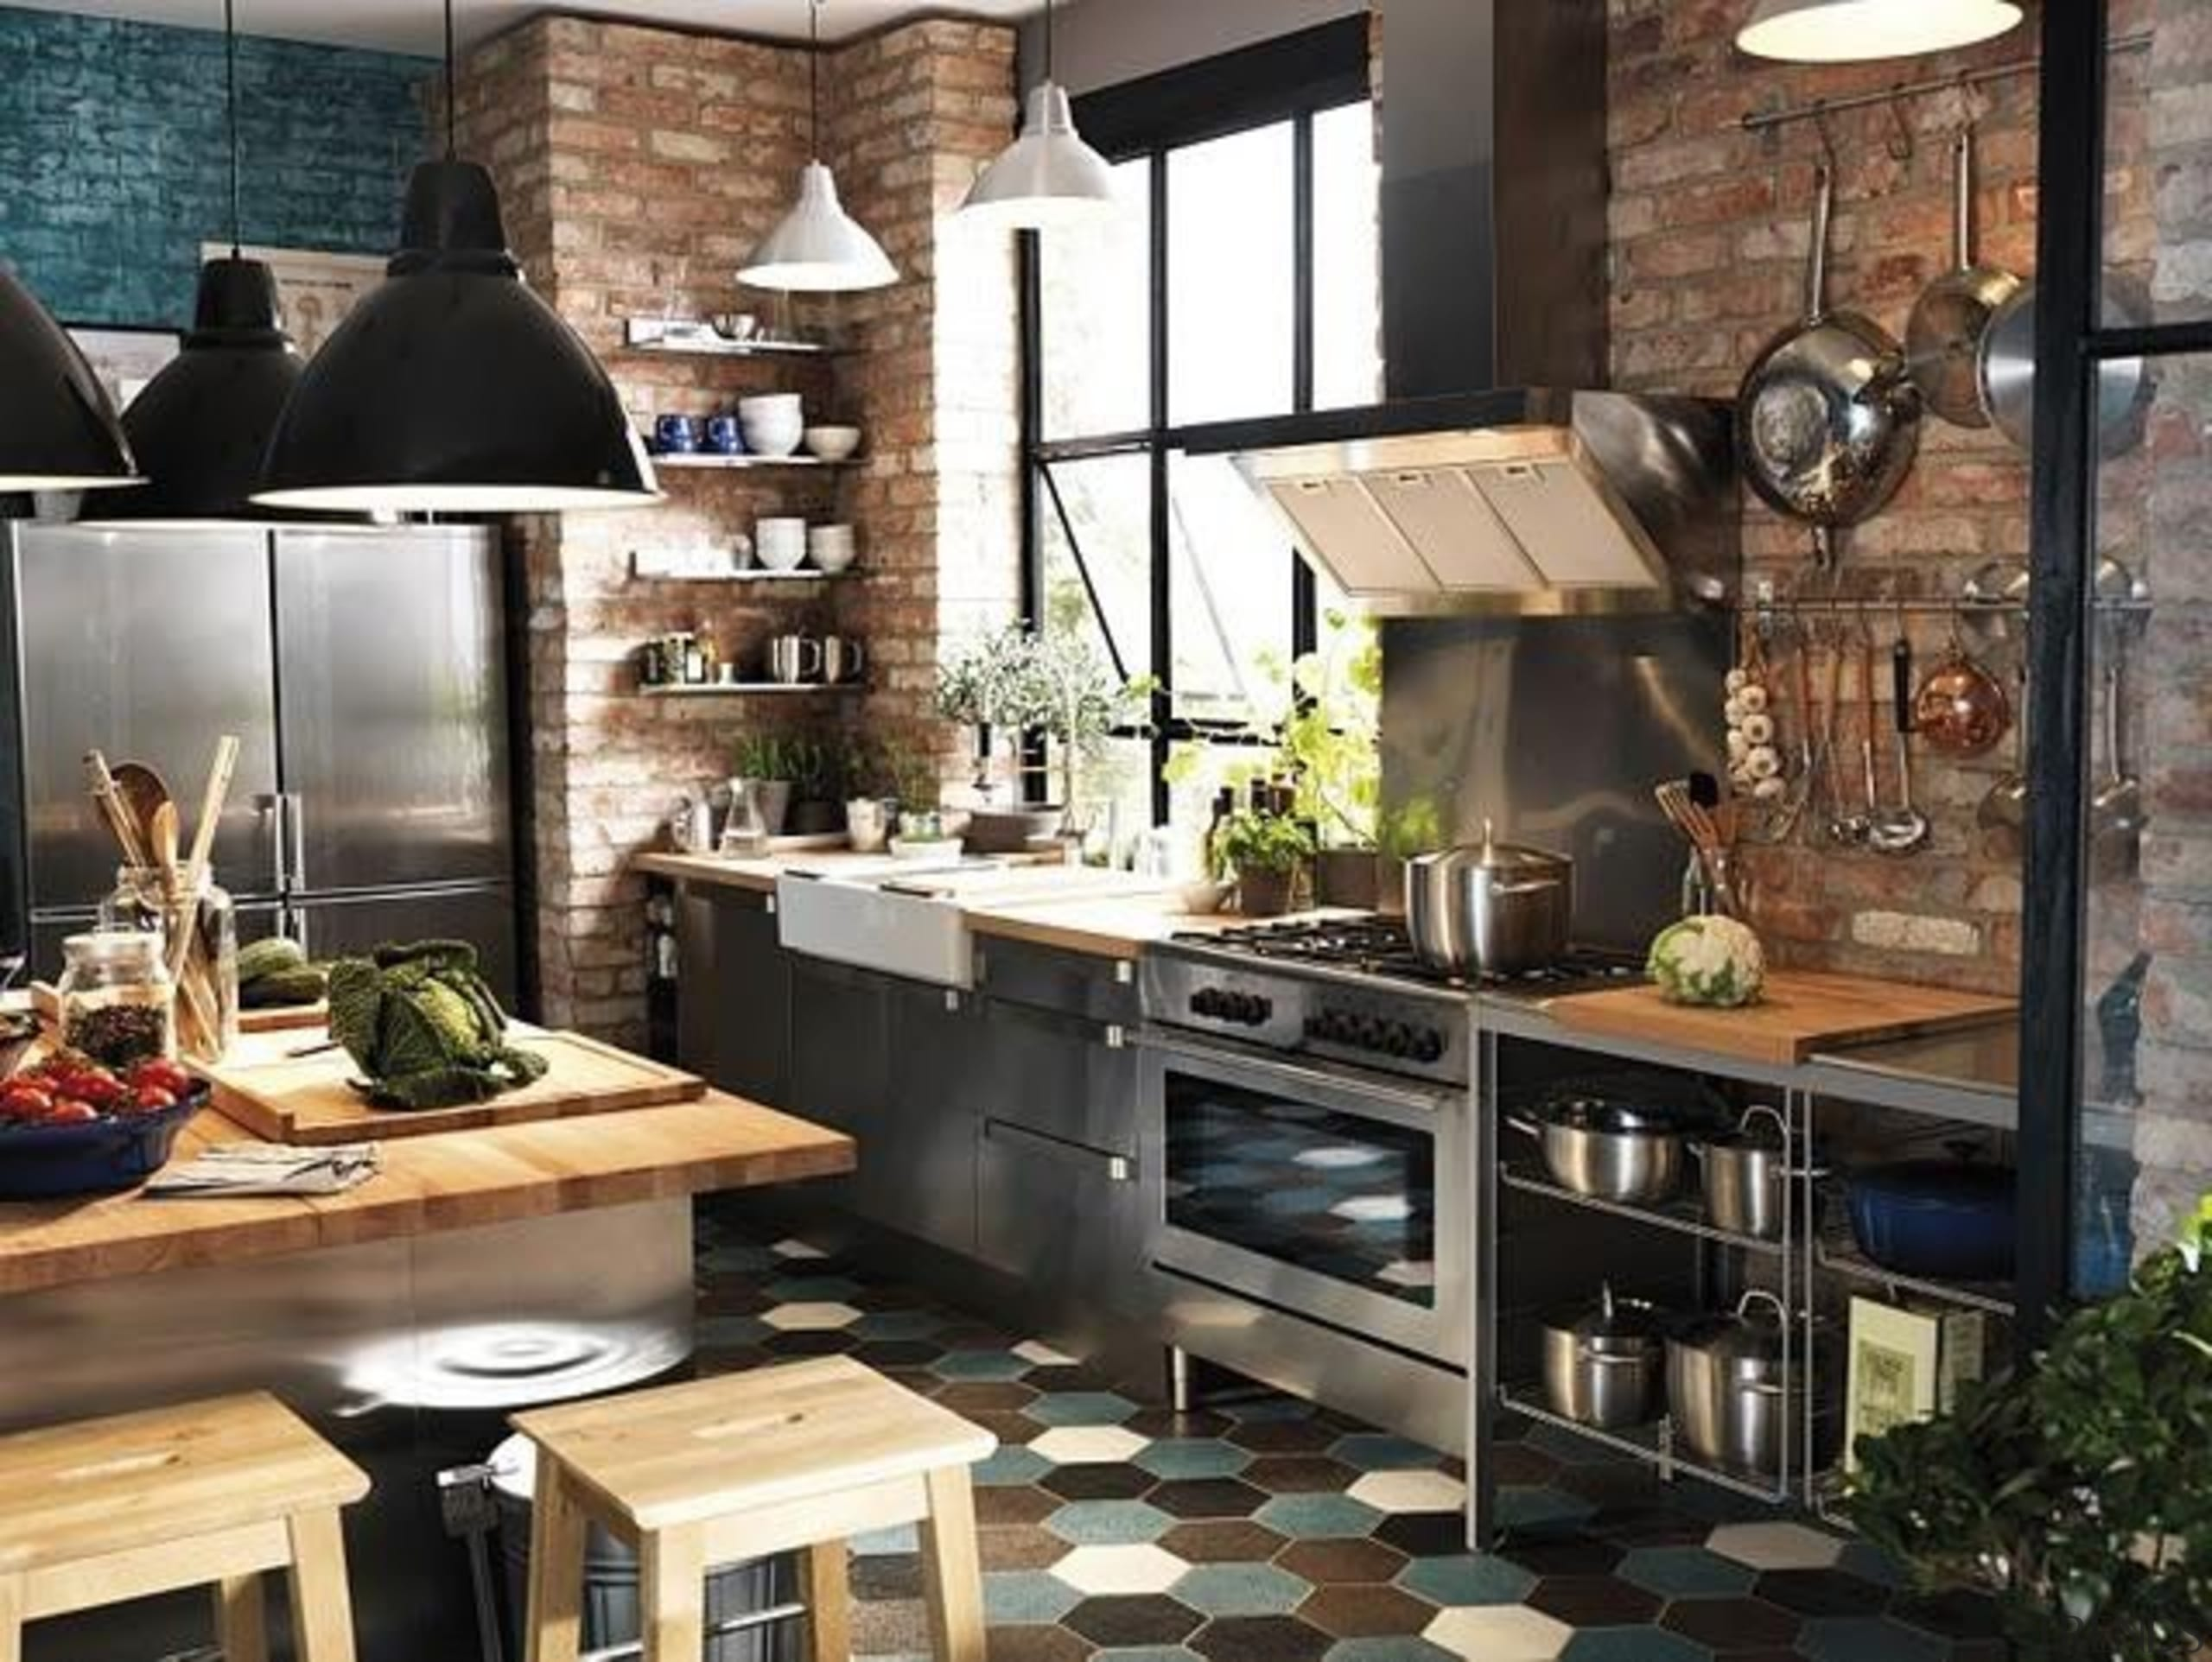 Start a myTrends ProjectCreate an ideas hub for countertop, interior design, kitchen, black